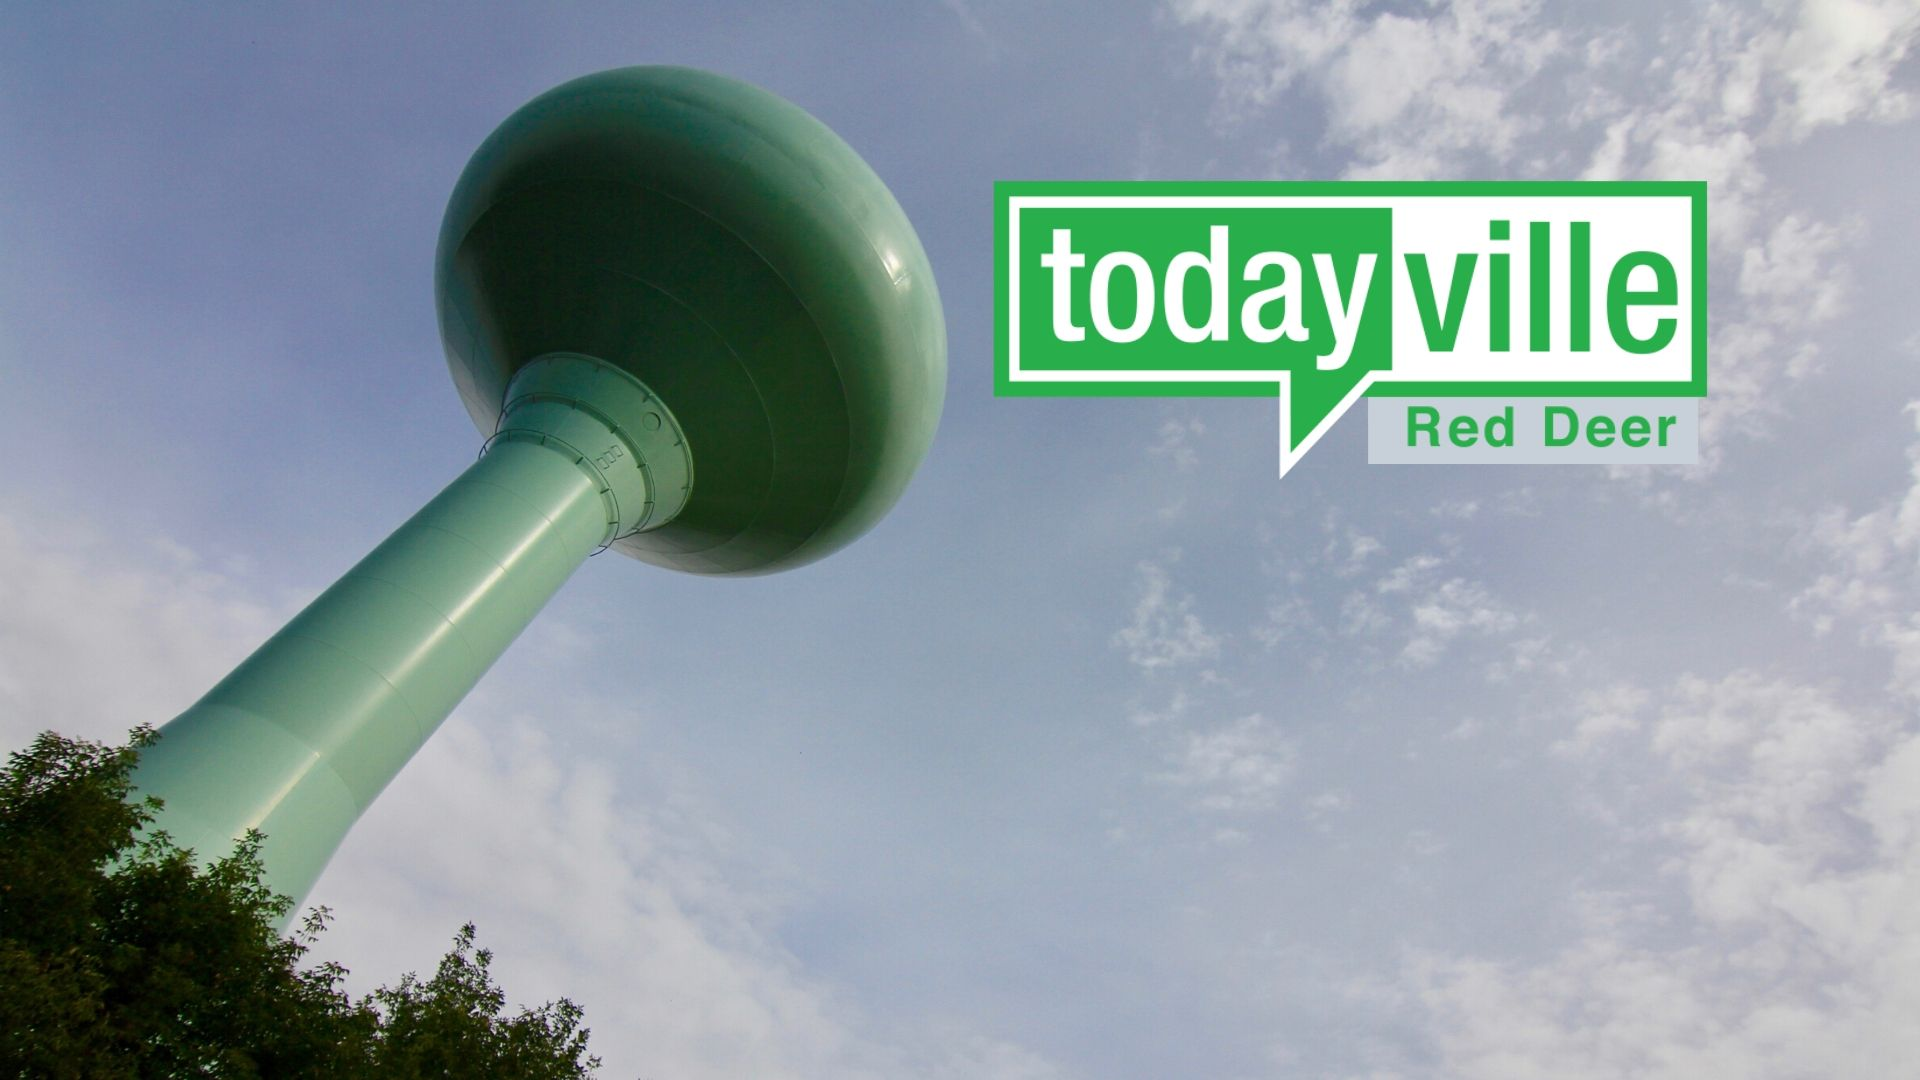 Red Deer water tower with todayville logo